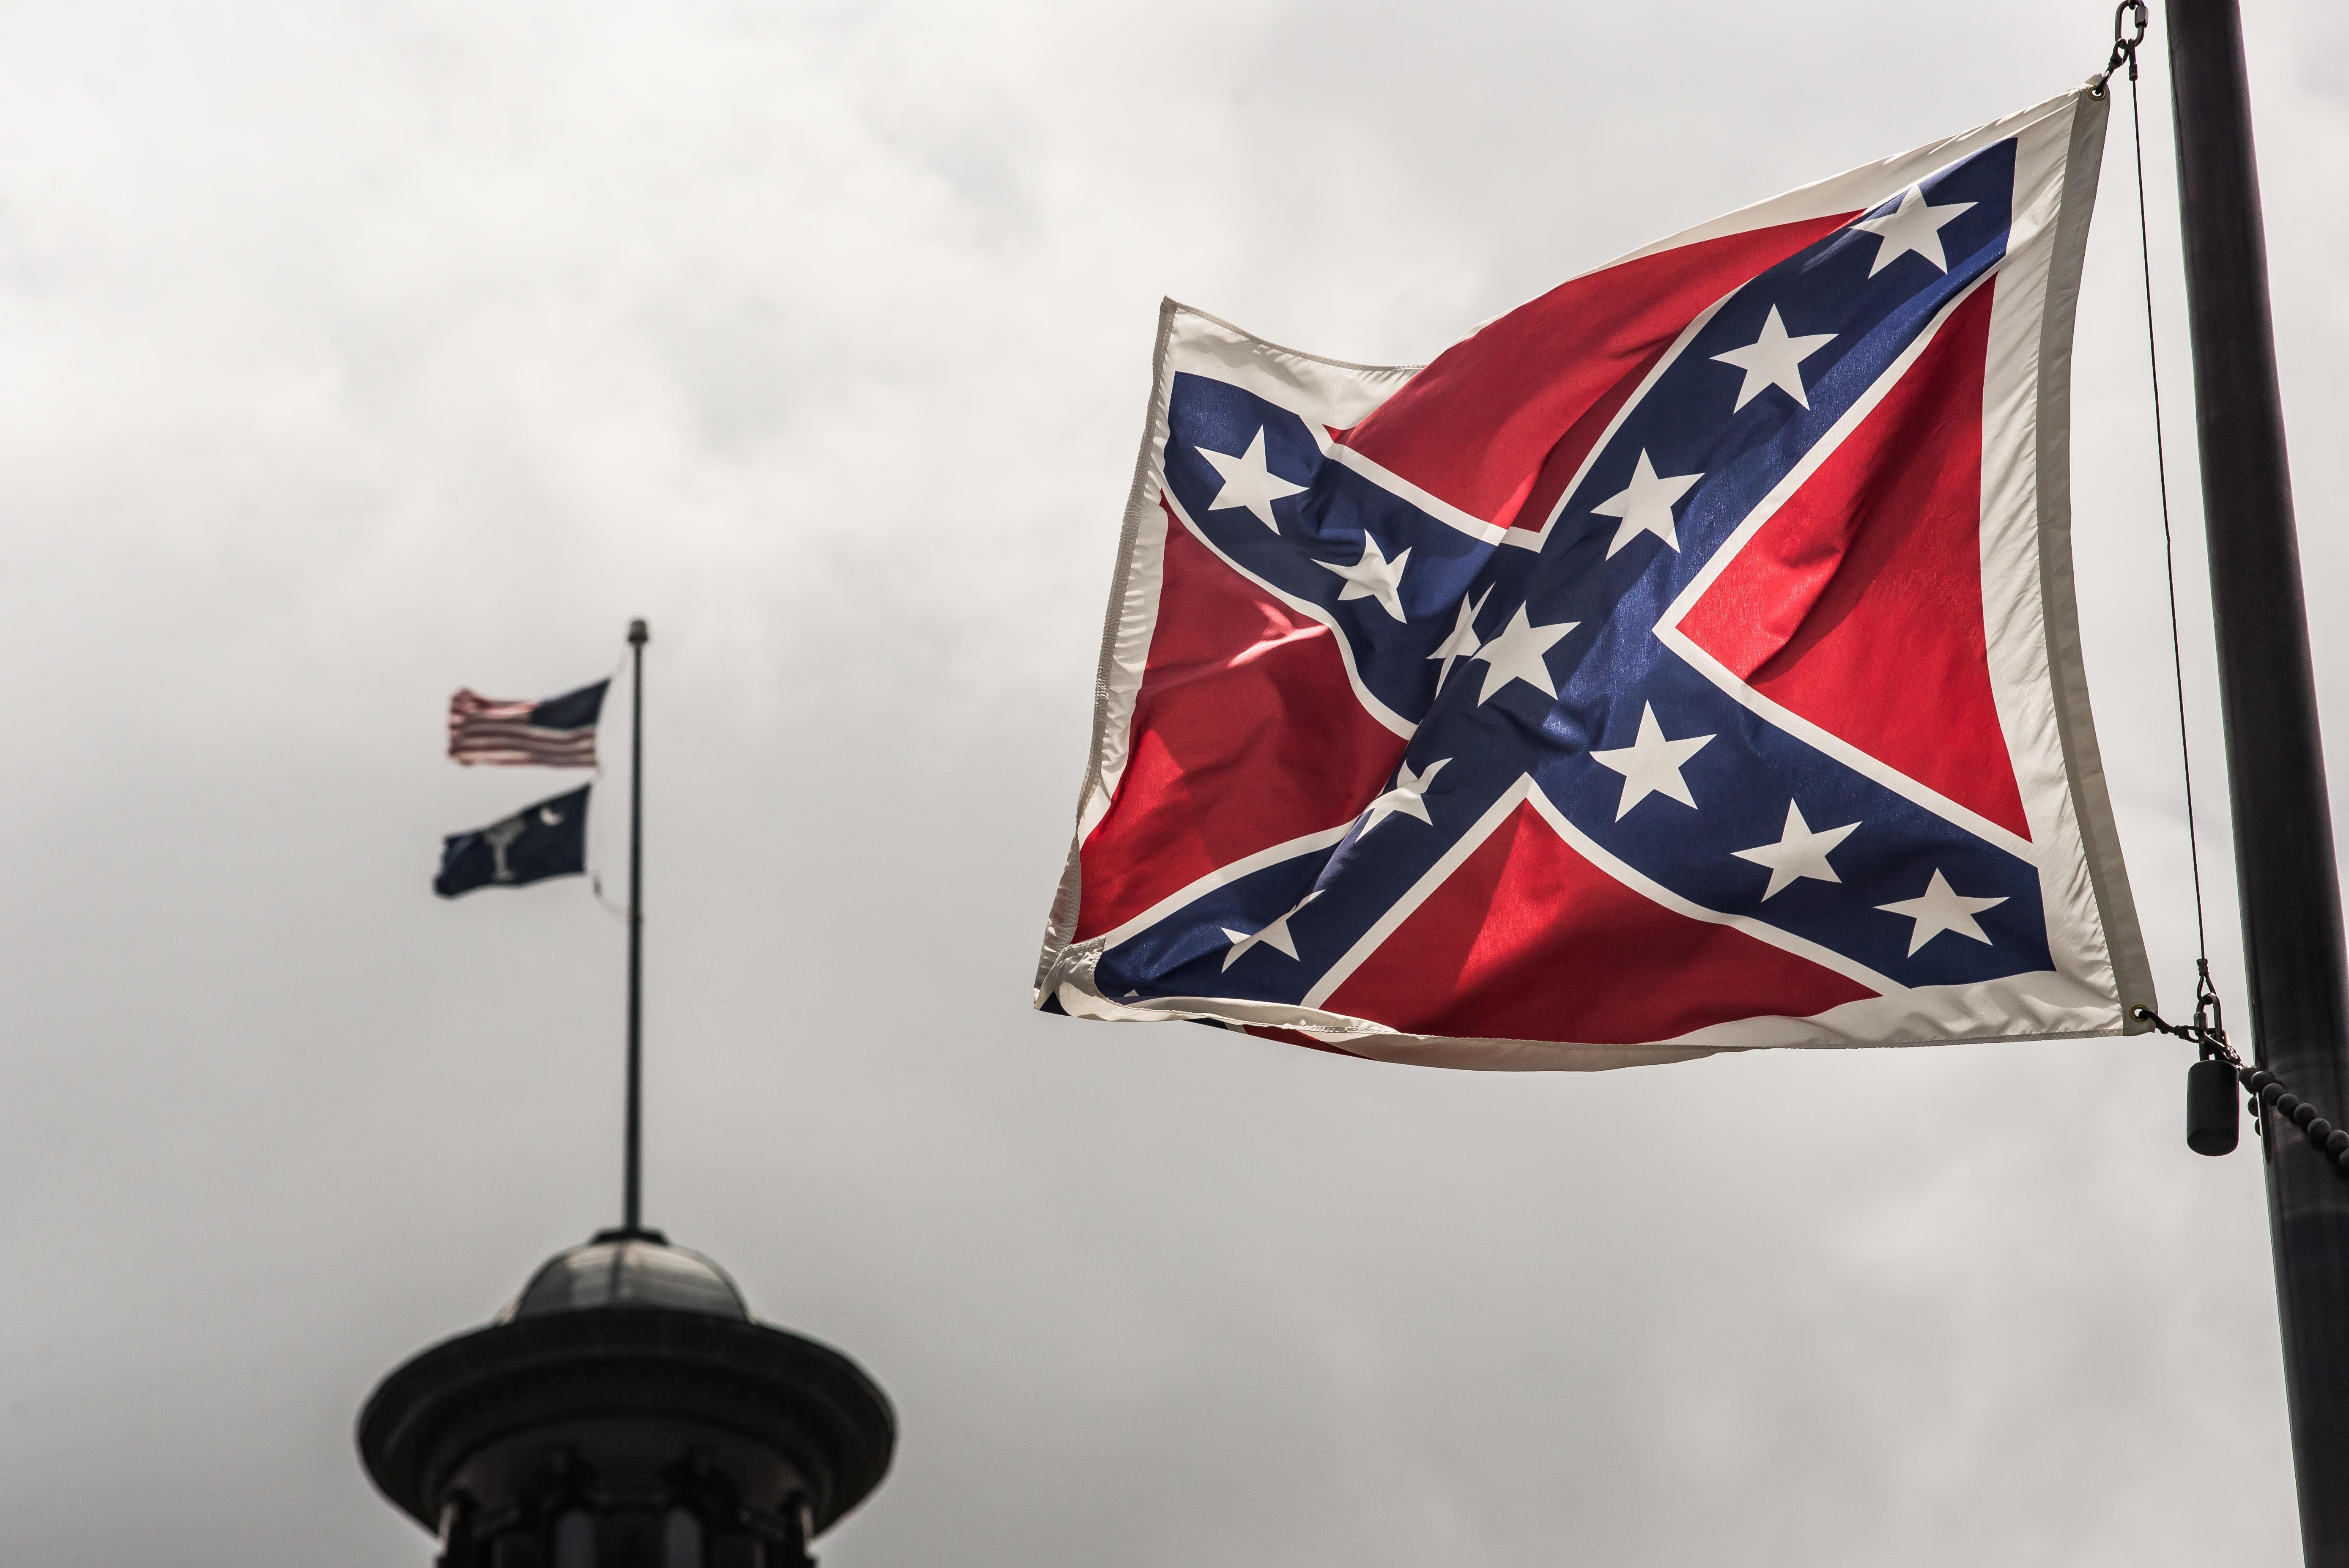 Marine Corps to remove displays of Confederate battle flag